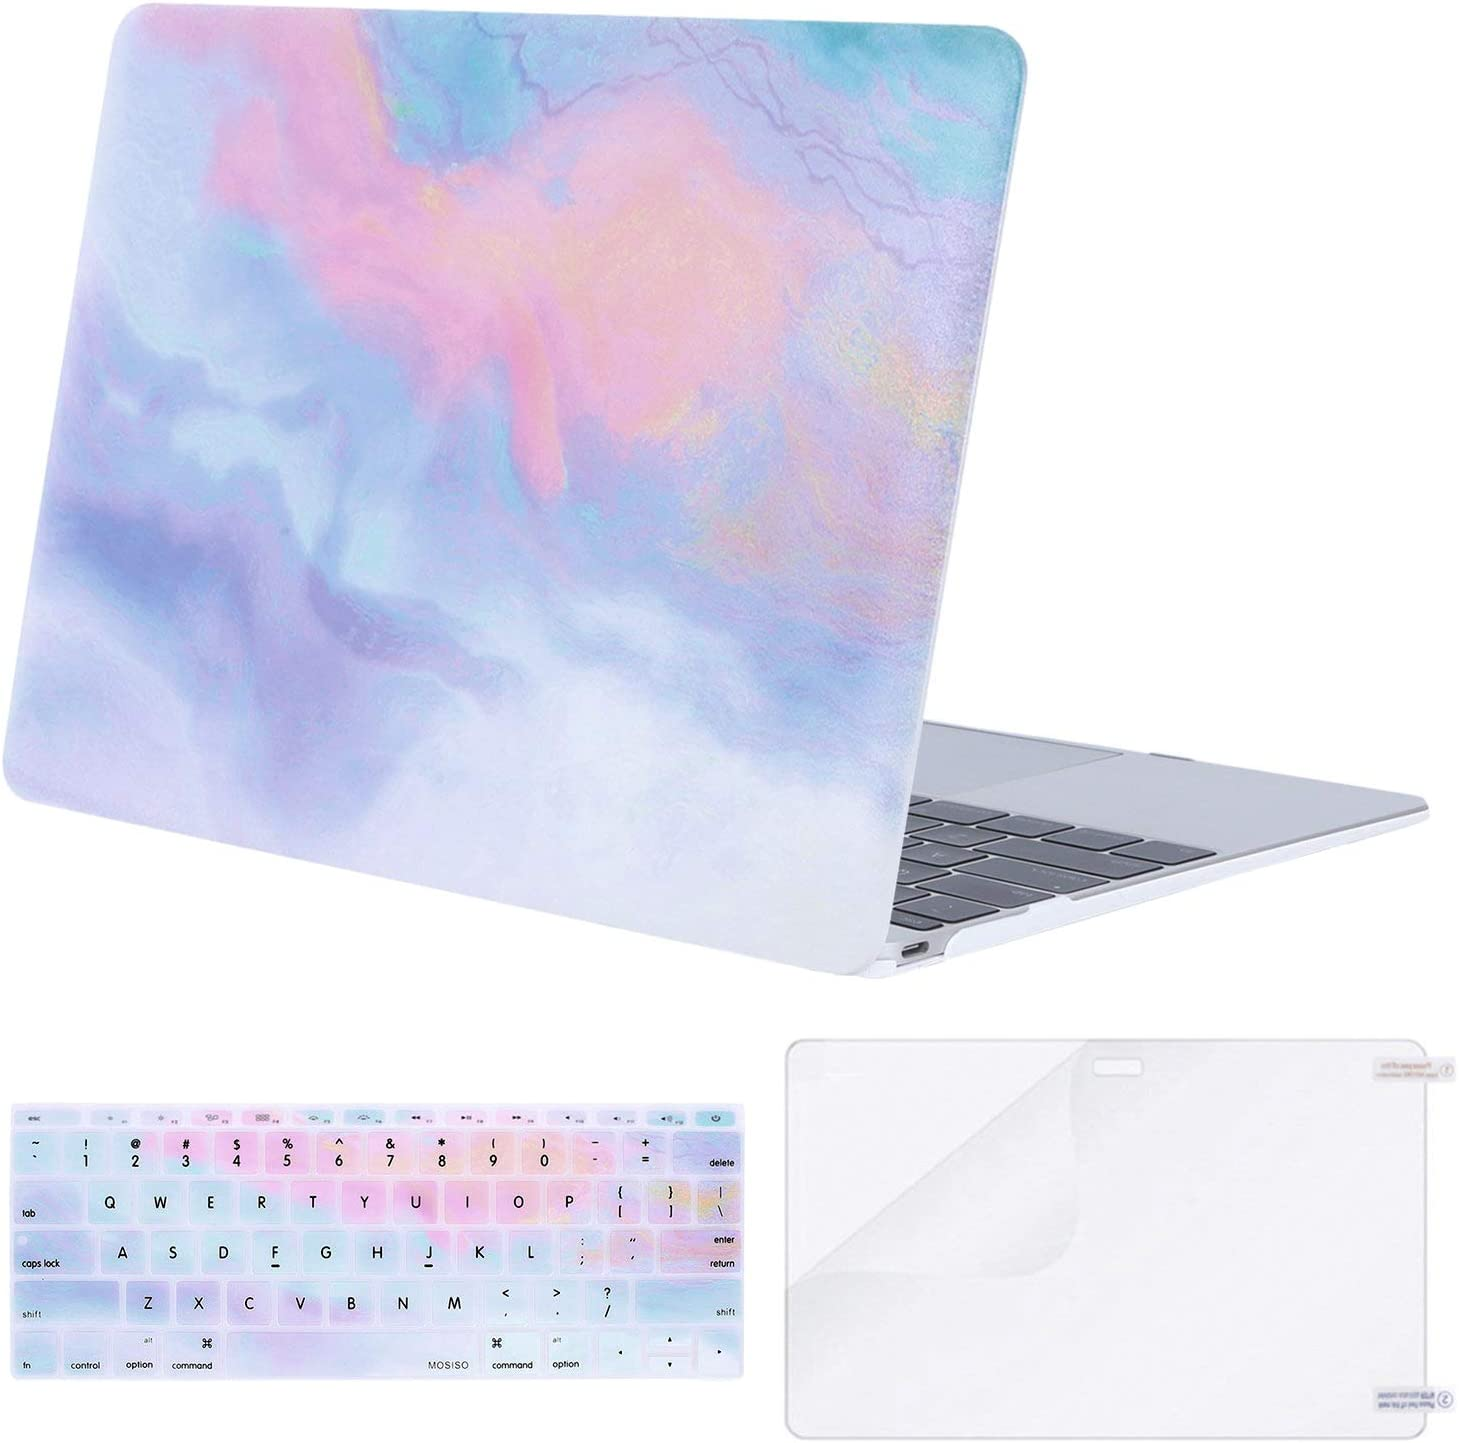 MOSISO MacBook 12 inch Case (Model A1534, Release 2017 2016 2015), Plastic Pattern Hard Shell & Keyboard Cover & Screen Protector Compatible with MacBook 12 inch with Retina Display, Colorful Clouds